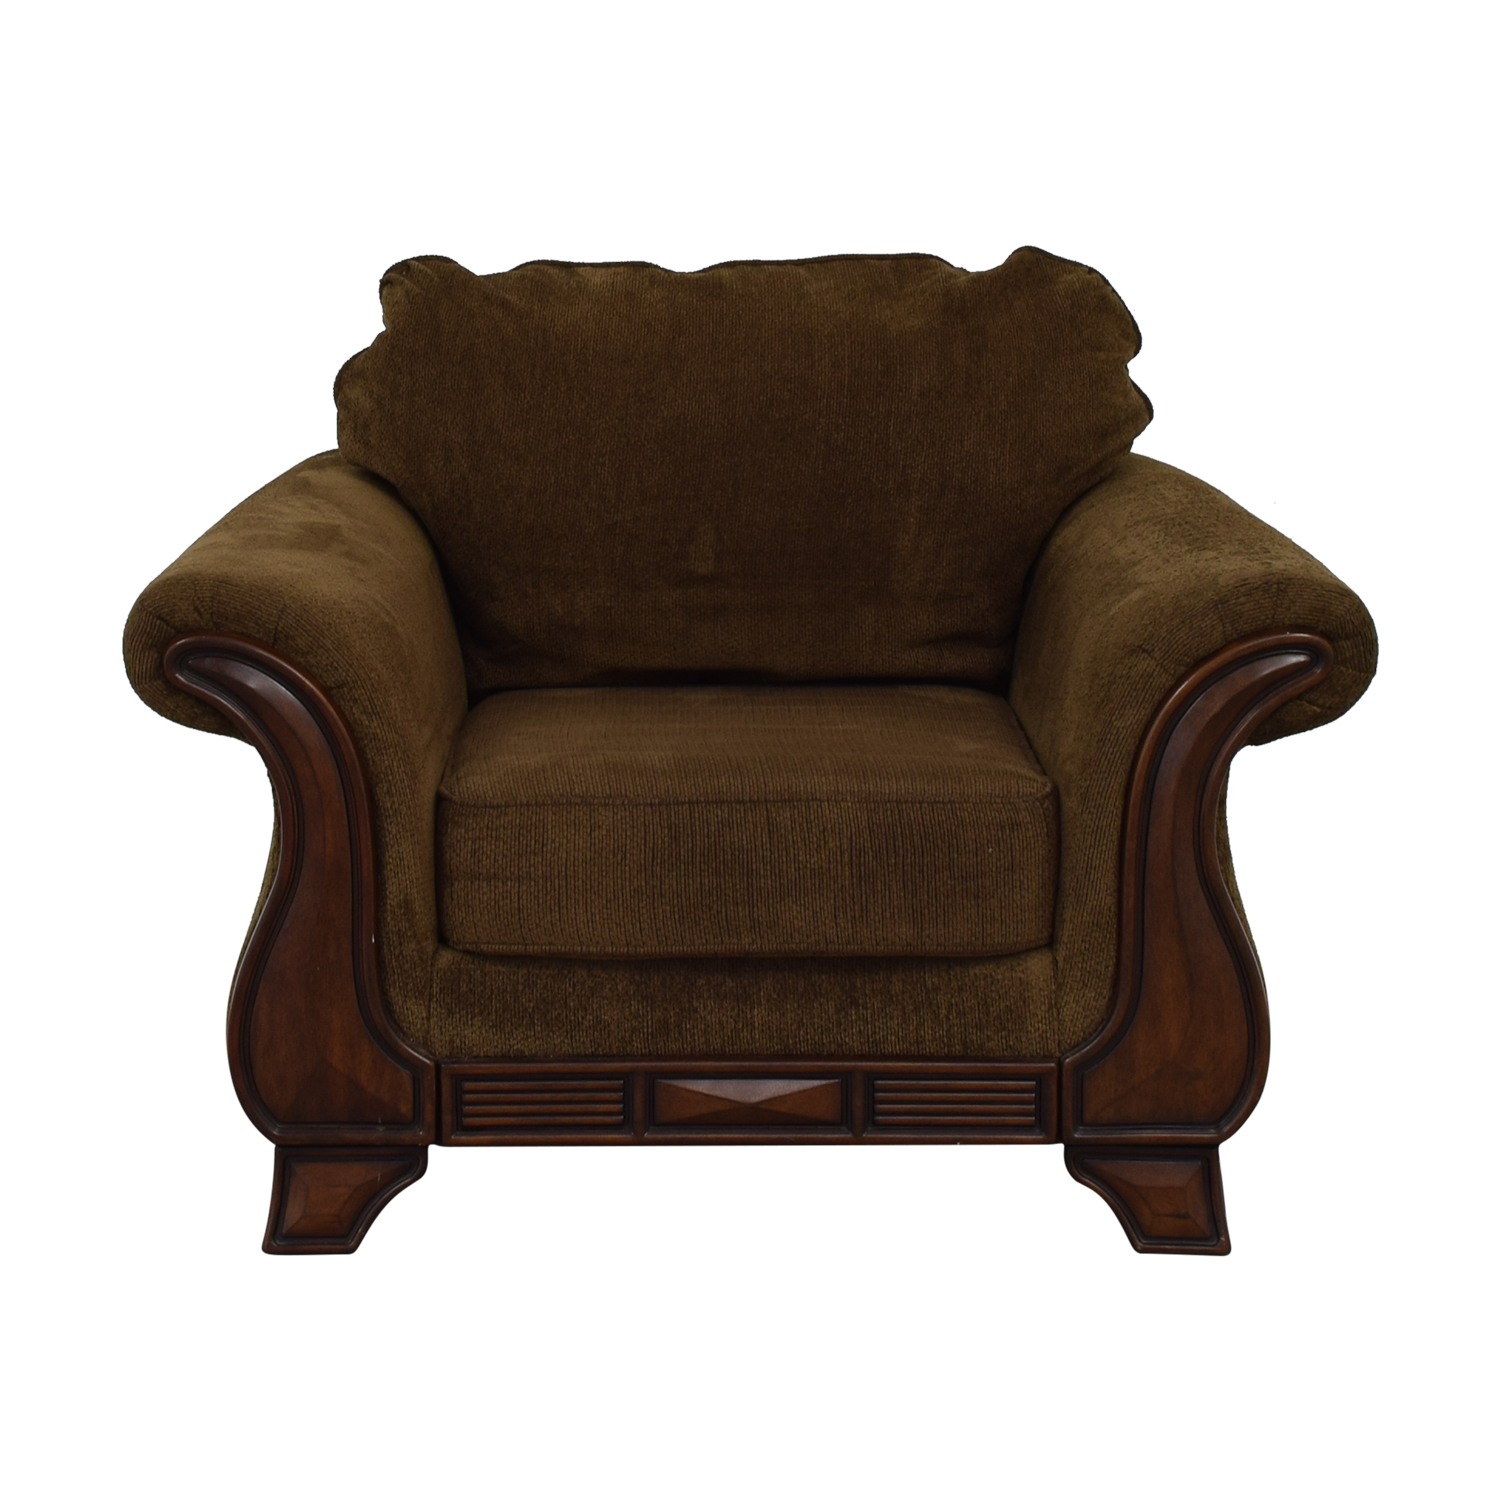 shop Jennifer Convertible Montgomery Brown Accent Chair Jennifer Convertible Accent Chairs